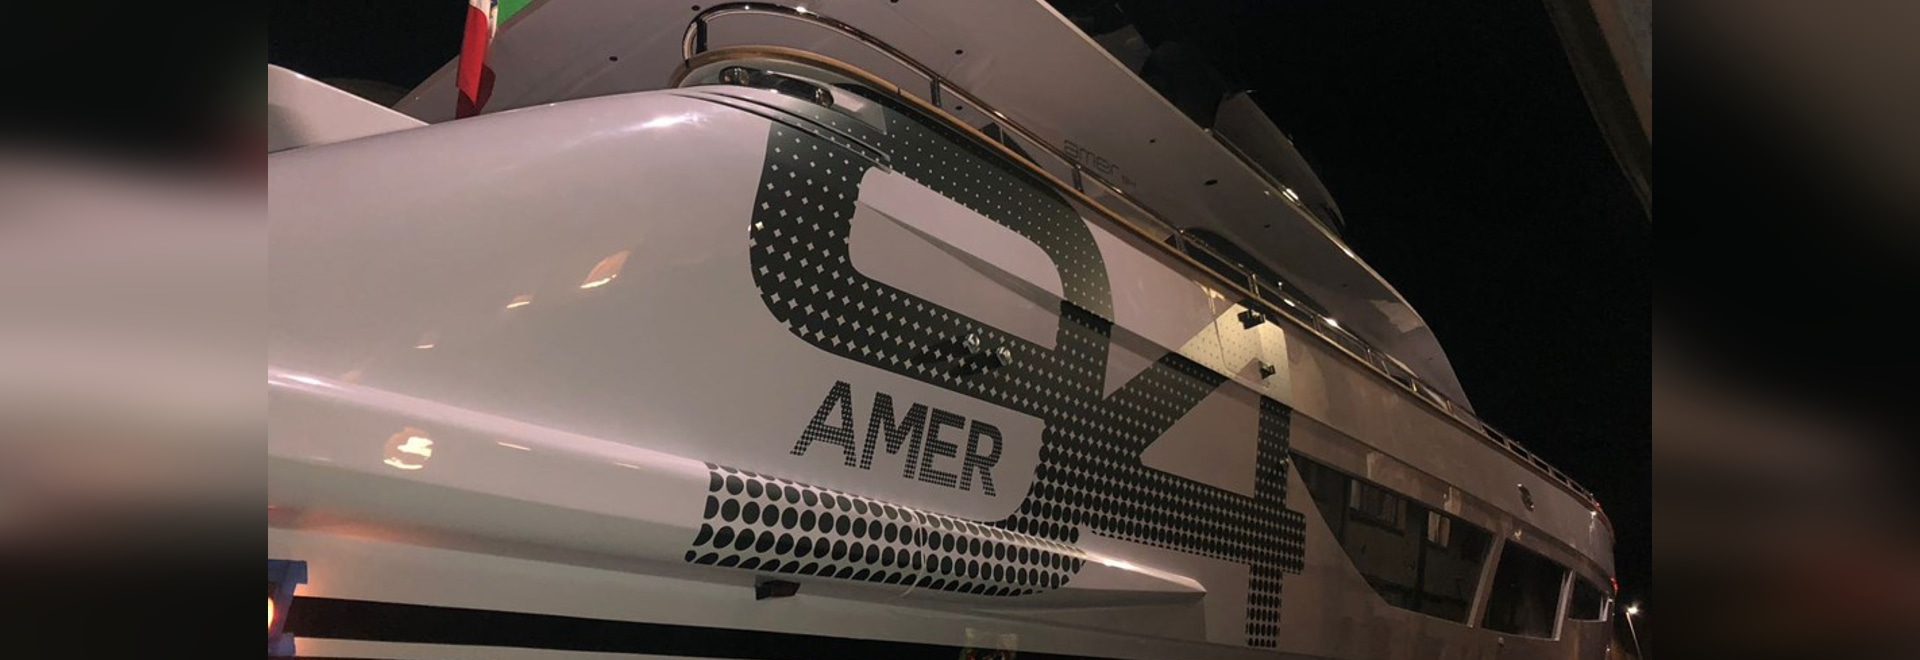 Permare launches fourth Amer 94